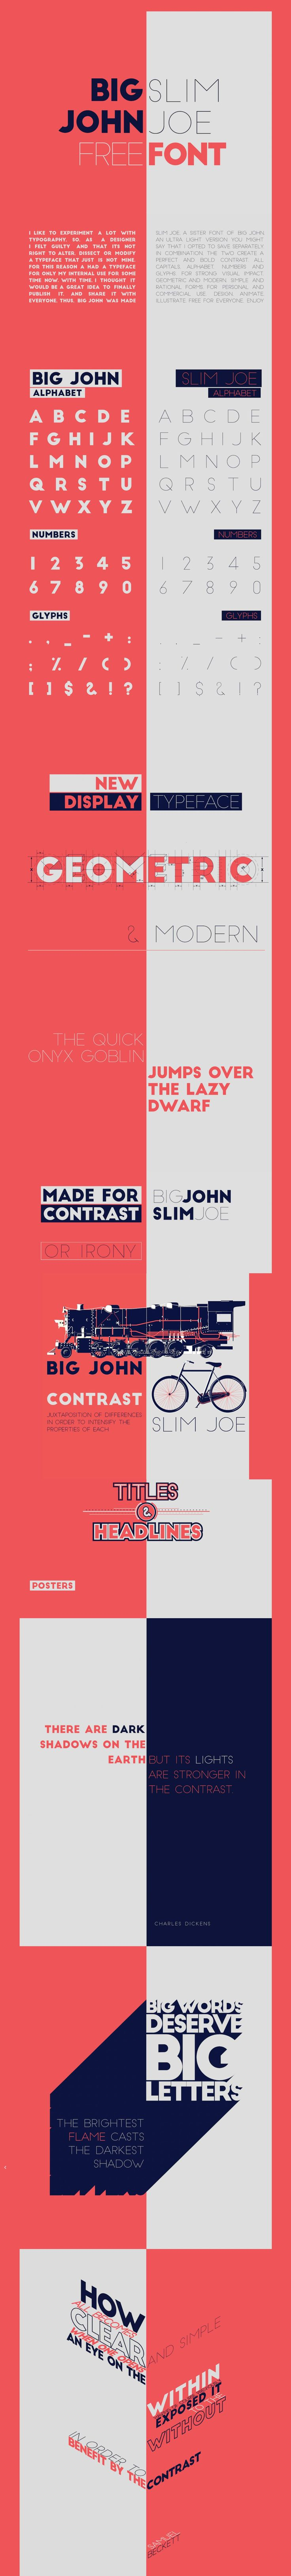 Big John & Slim Joe Free Typeface - Free Fonts  Big John Slim Joe free sans serif typeface with a useful usually needed contrast between thick john and slime joe specially in headings & poster designs.